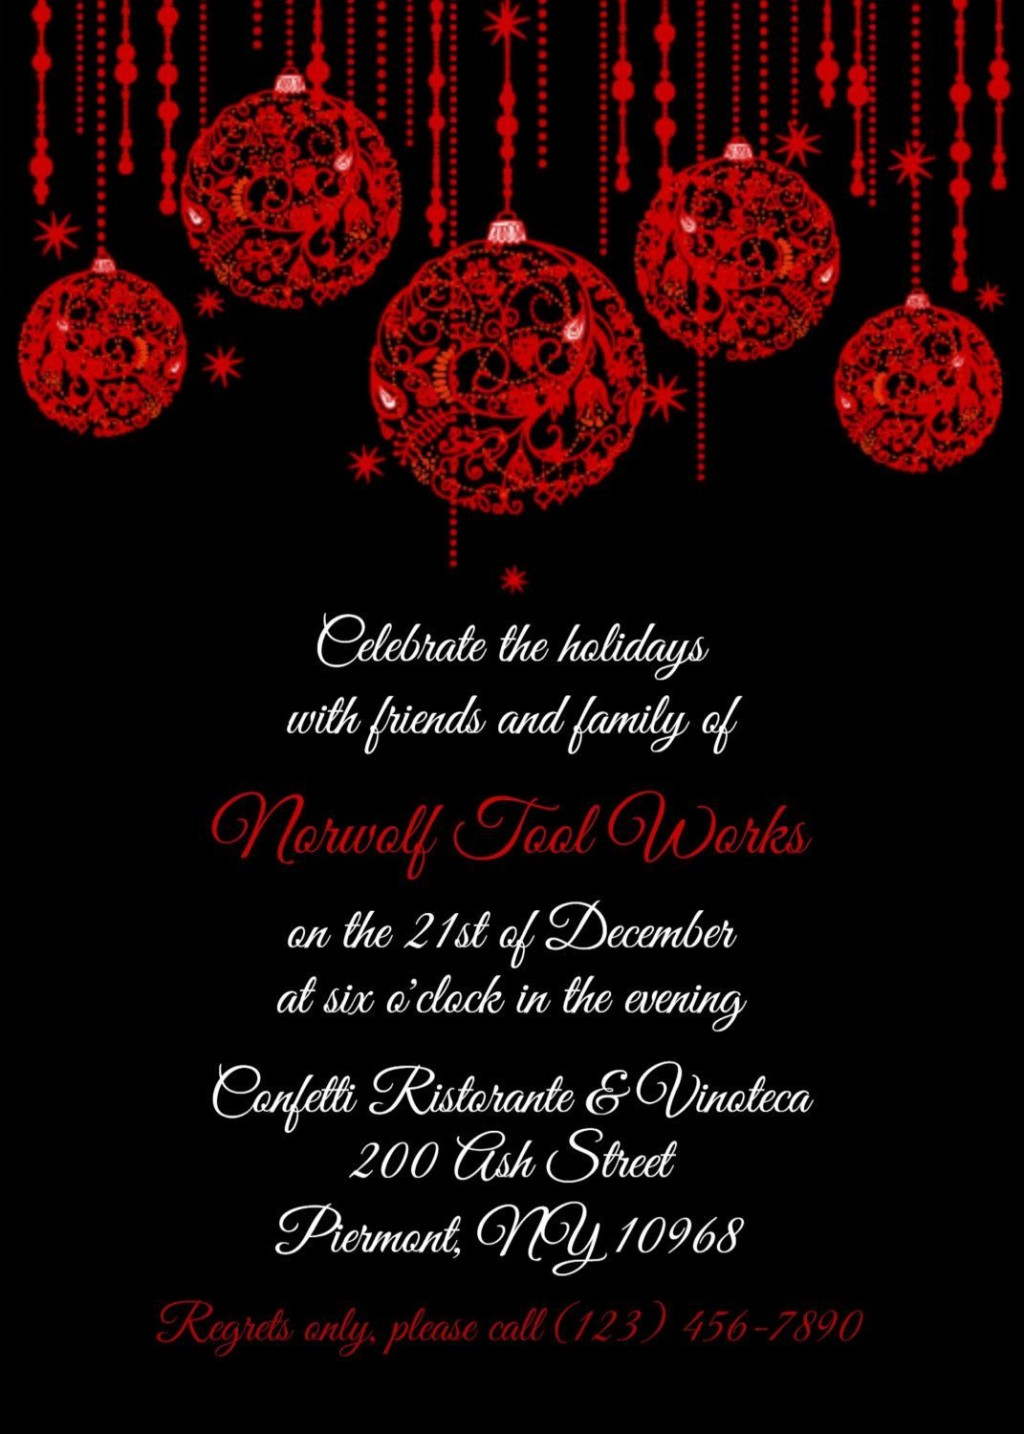 006 Unbelievable Free Busines Holiday Party Invitation Template Image  Templates Printable OfficeLarge